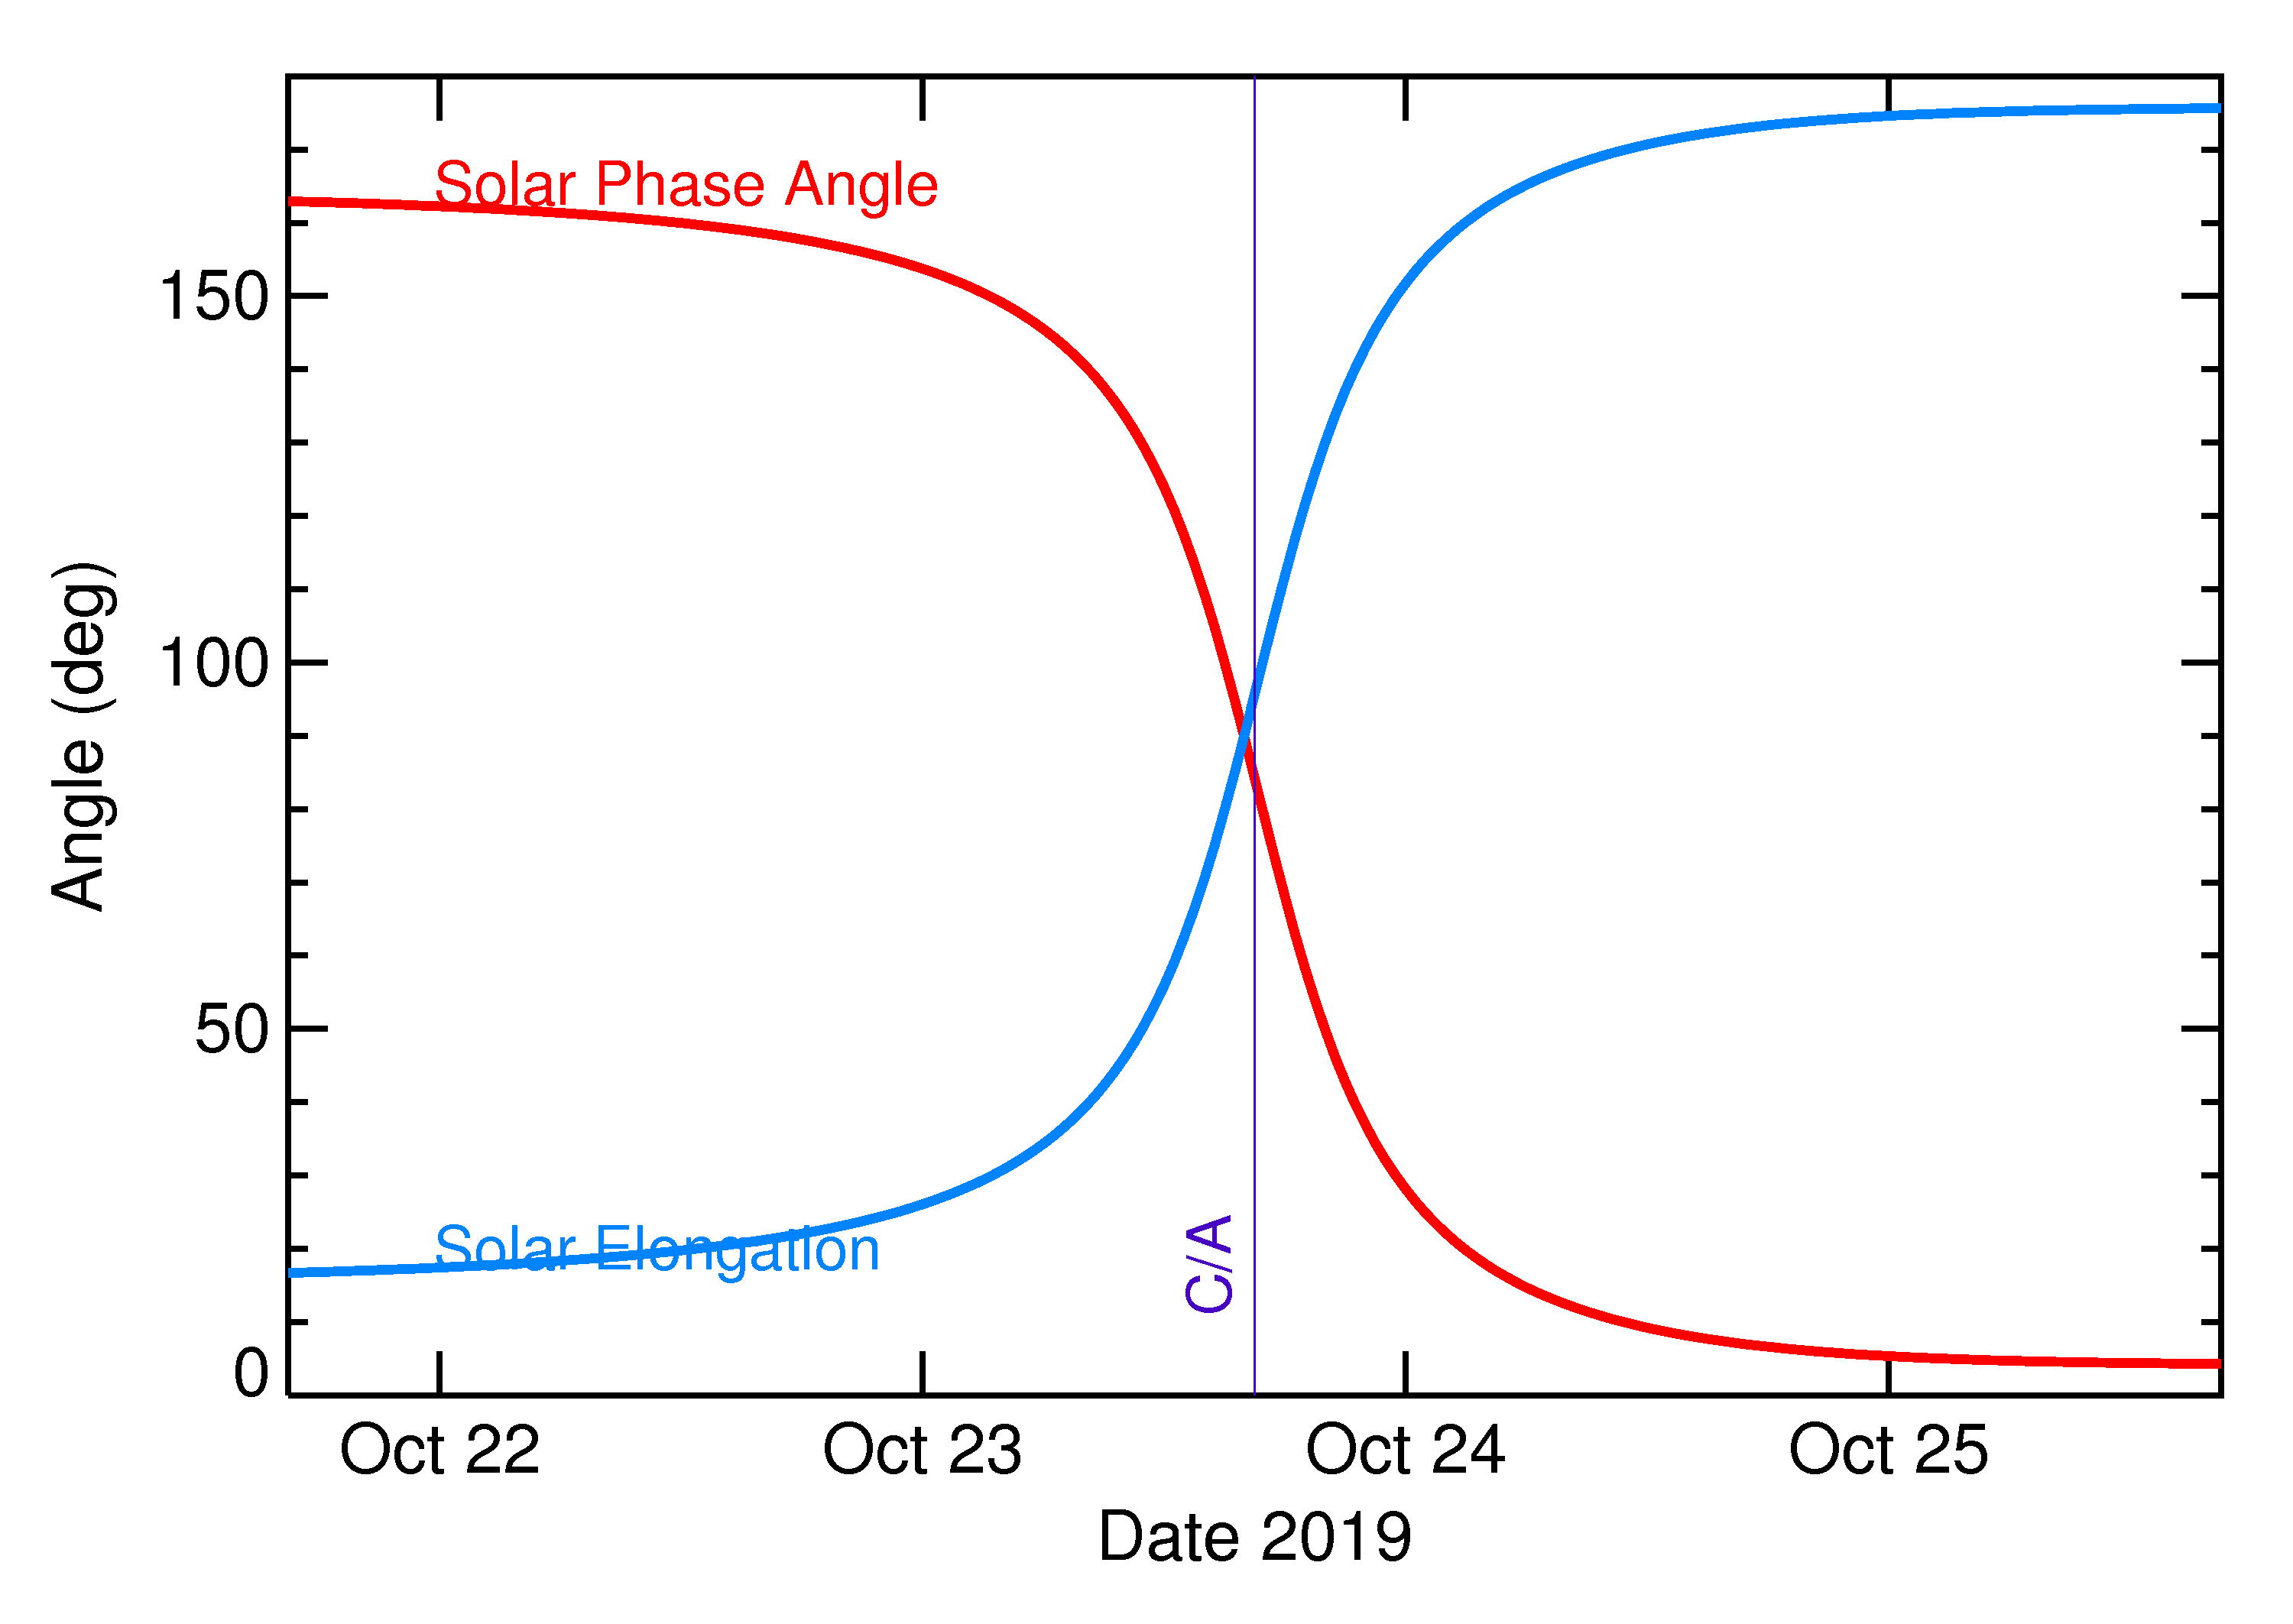 Solar Elongation and Solar Phase Angle of 2019 UN8 in the days around closest approach